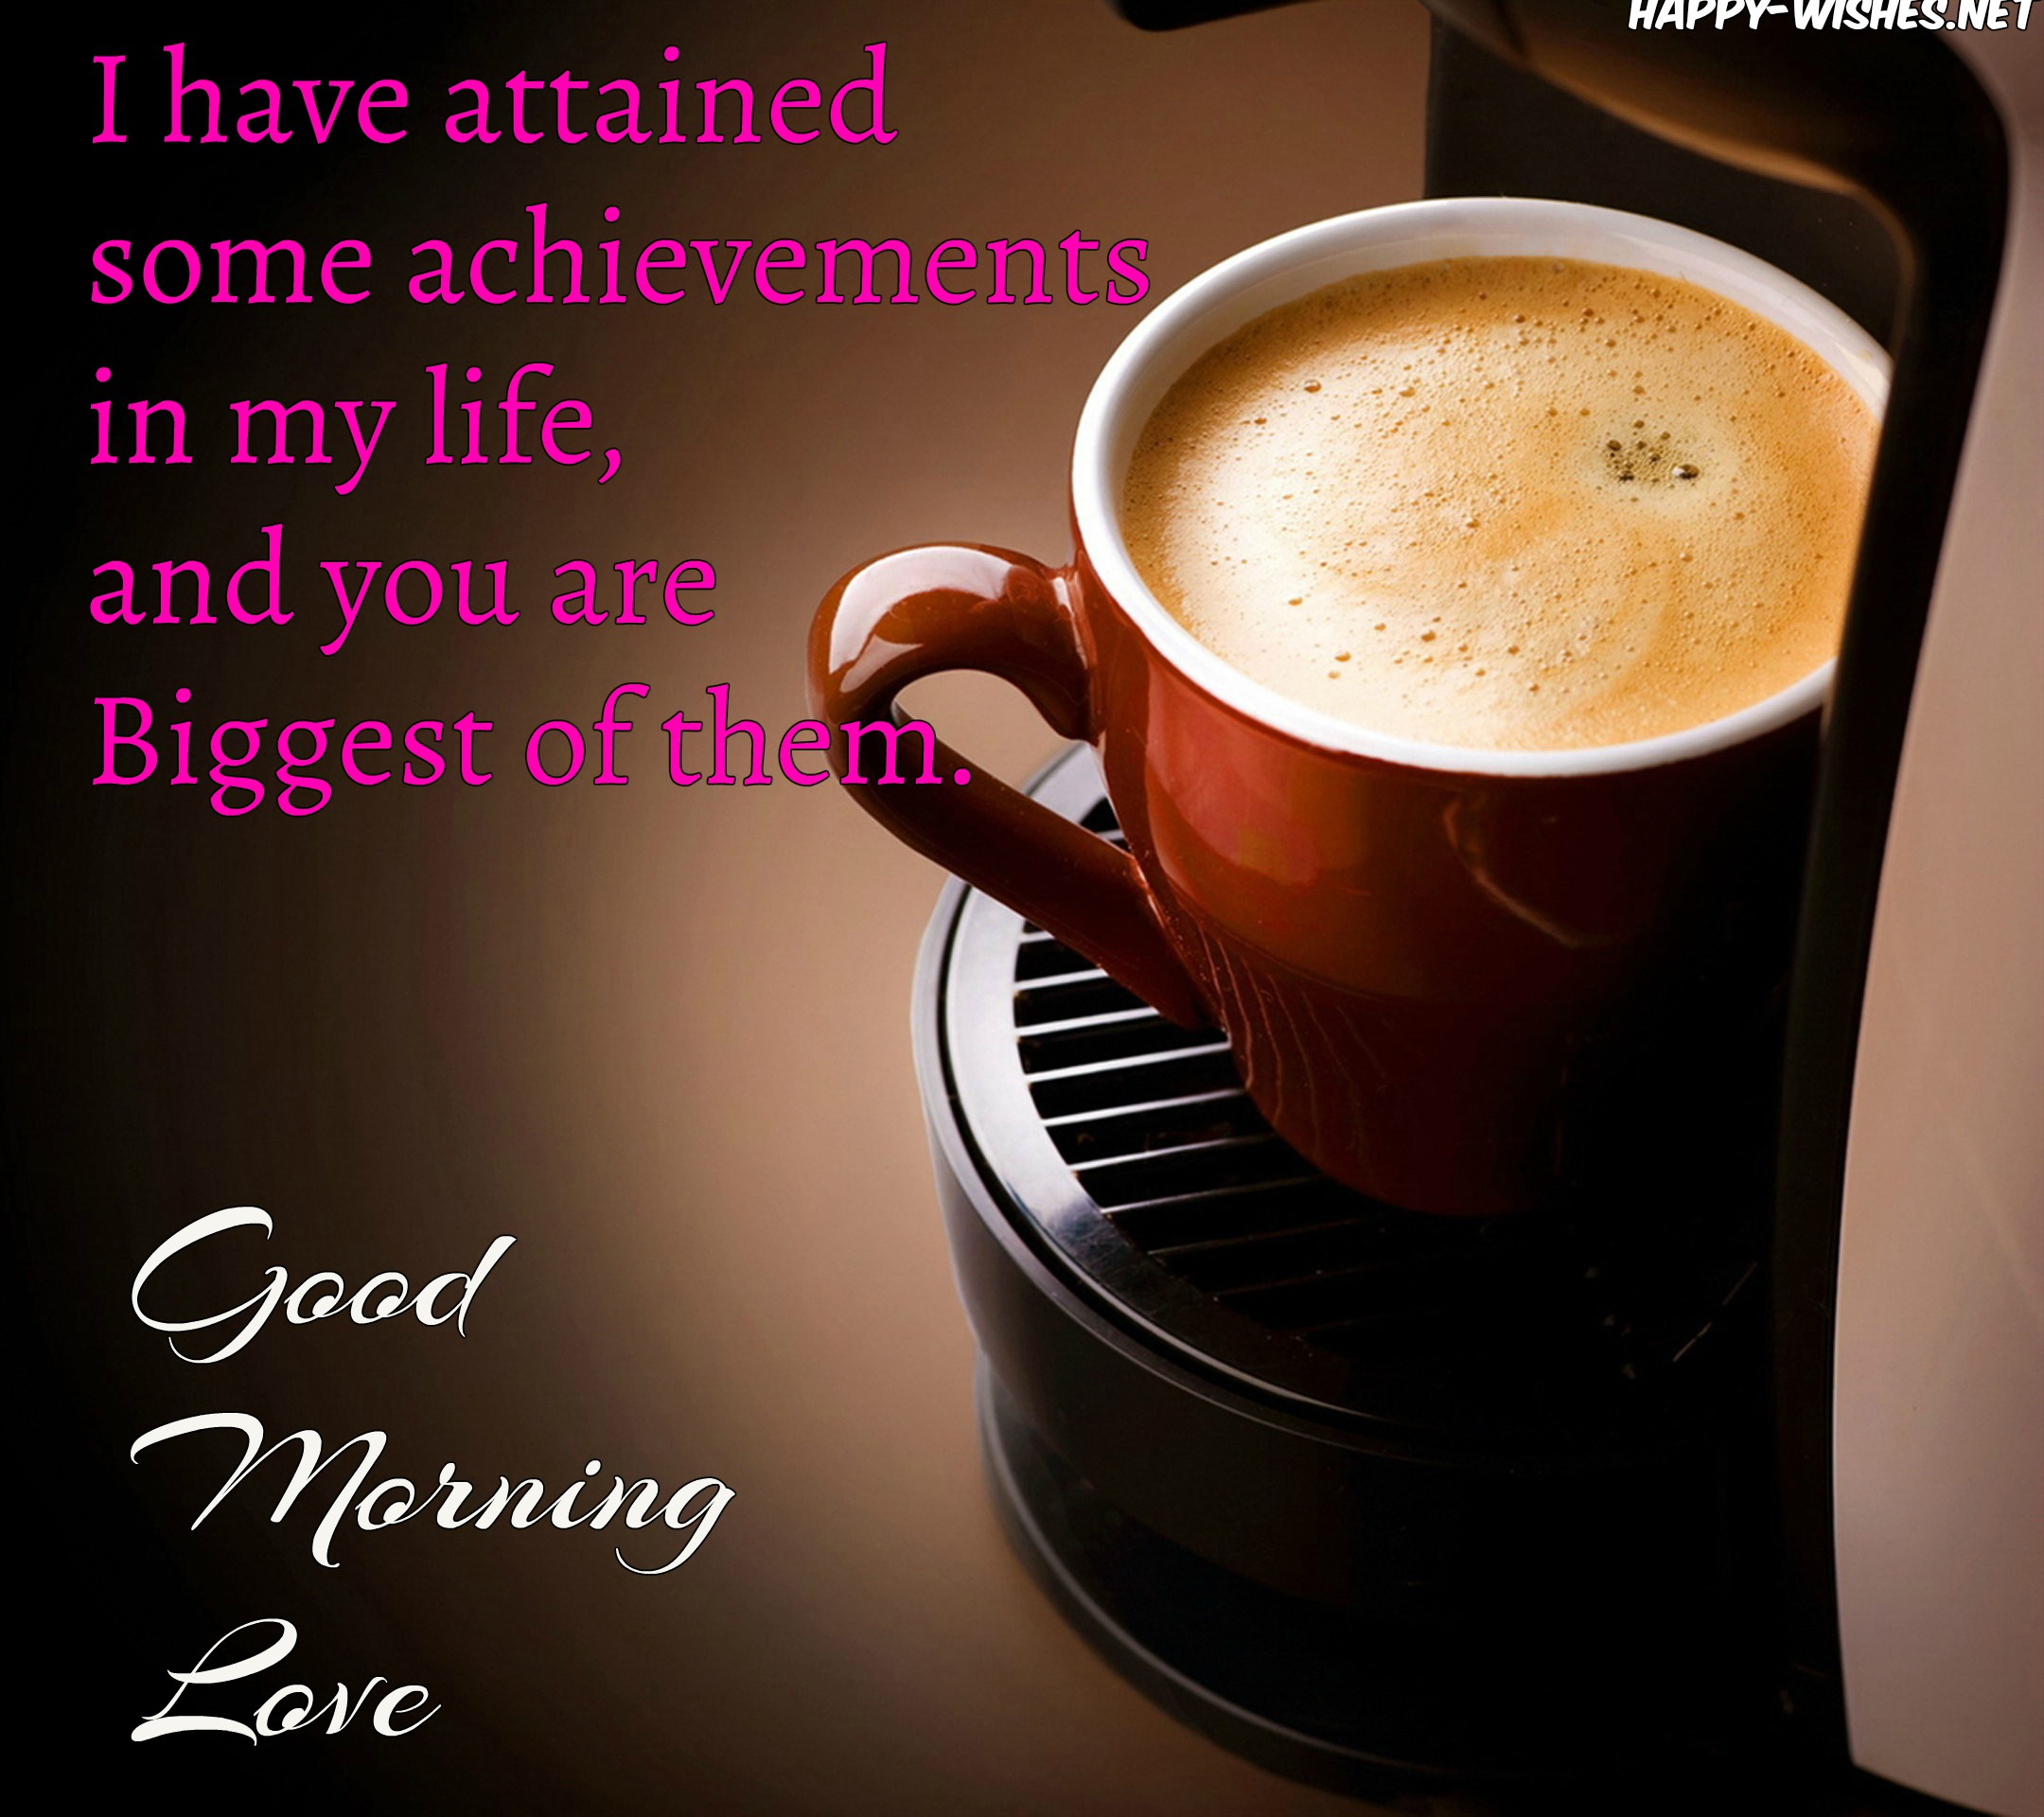 25 Best Good morning my love Images and Quotes